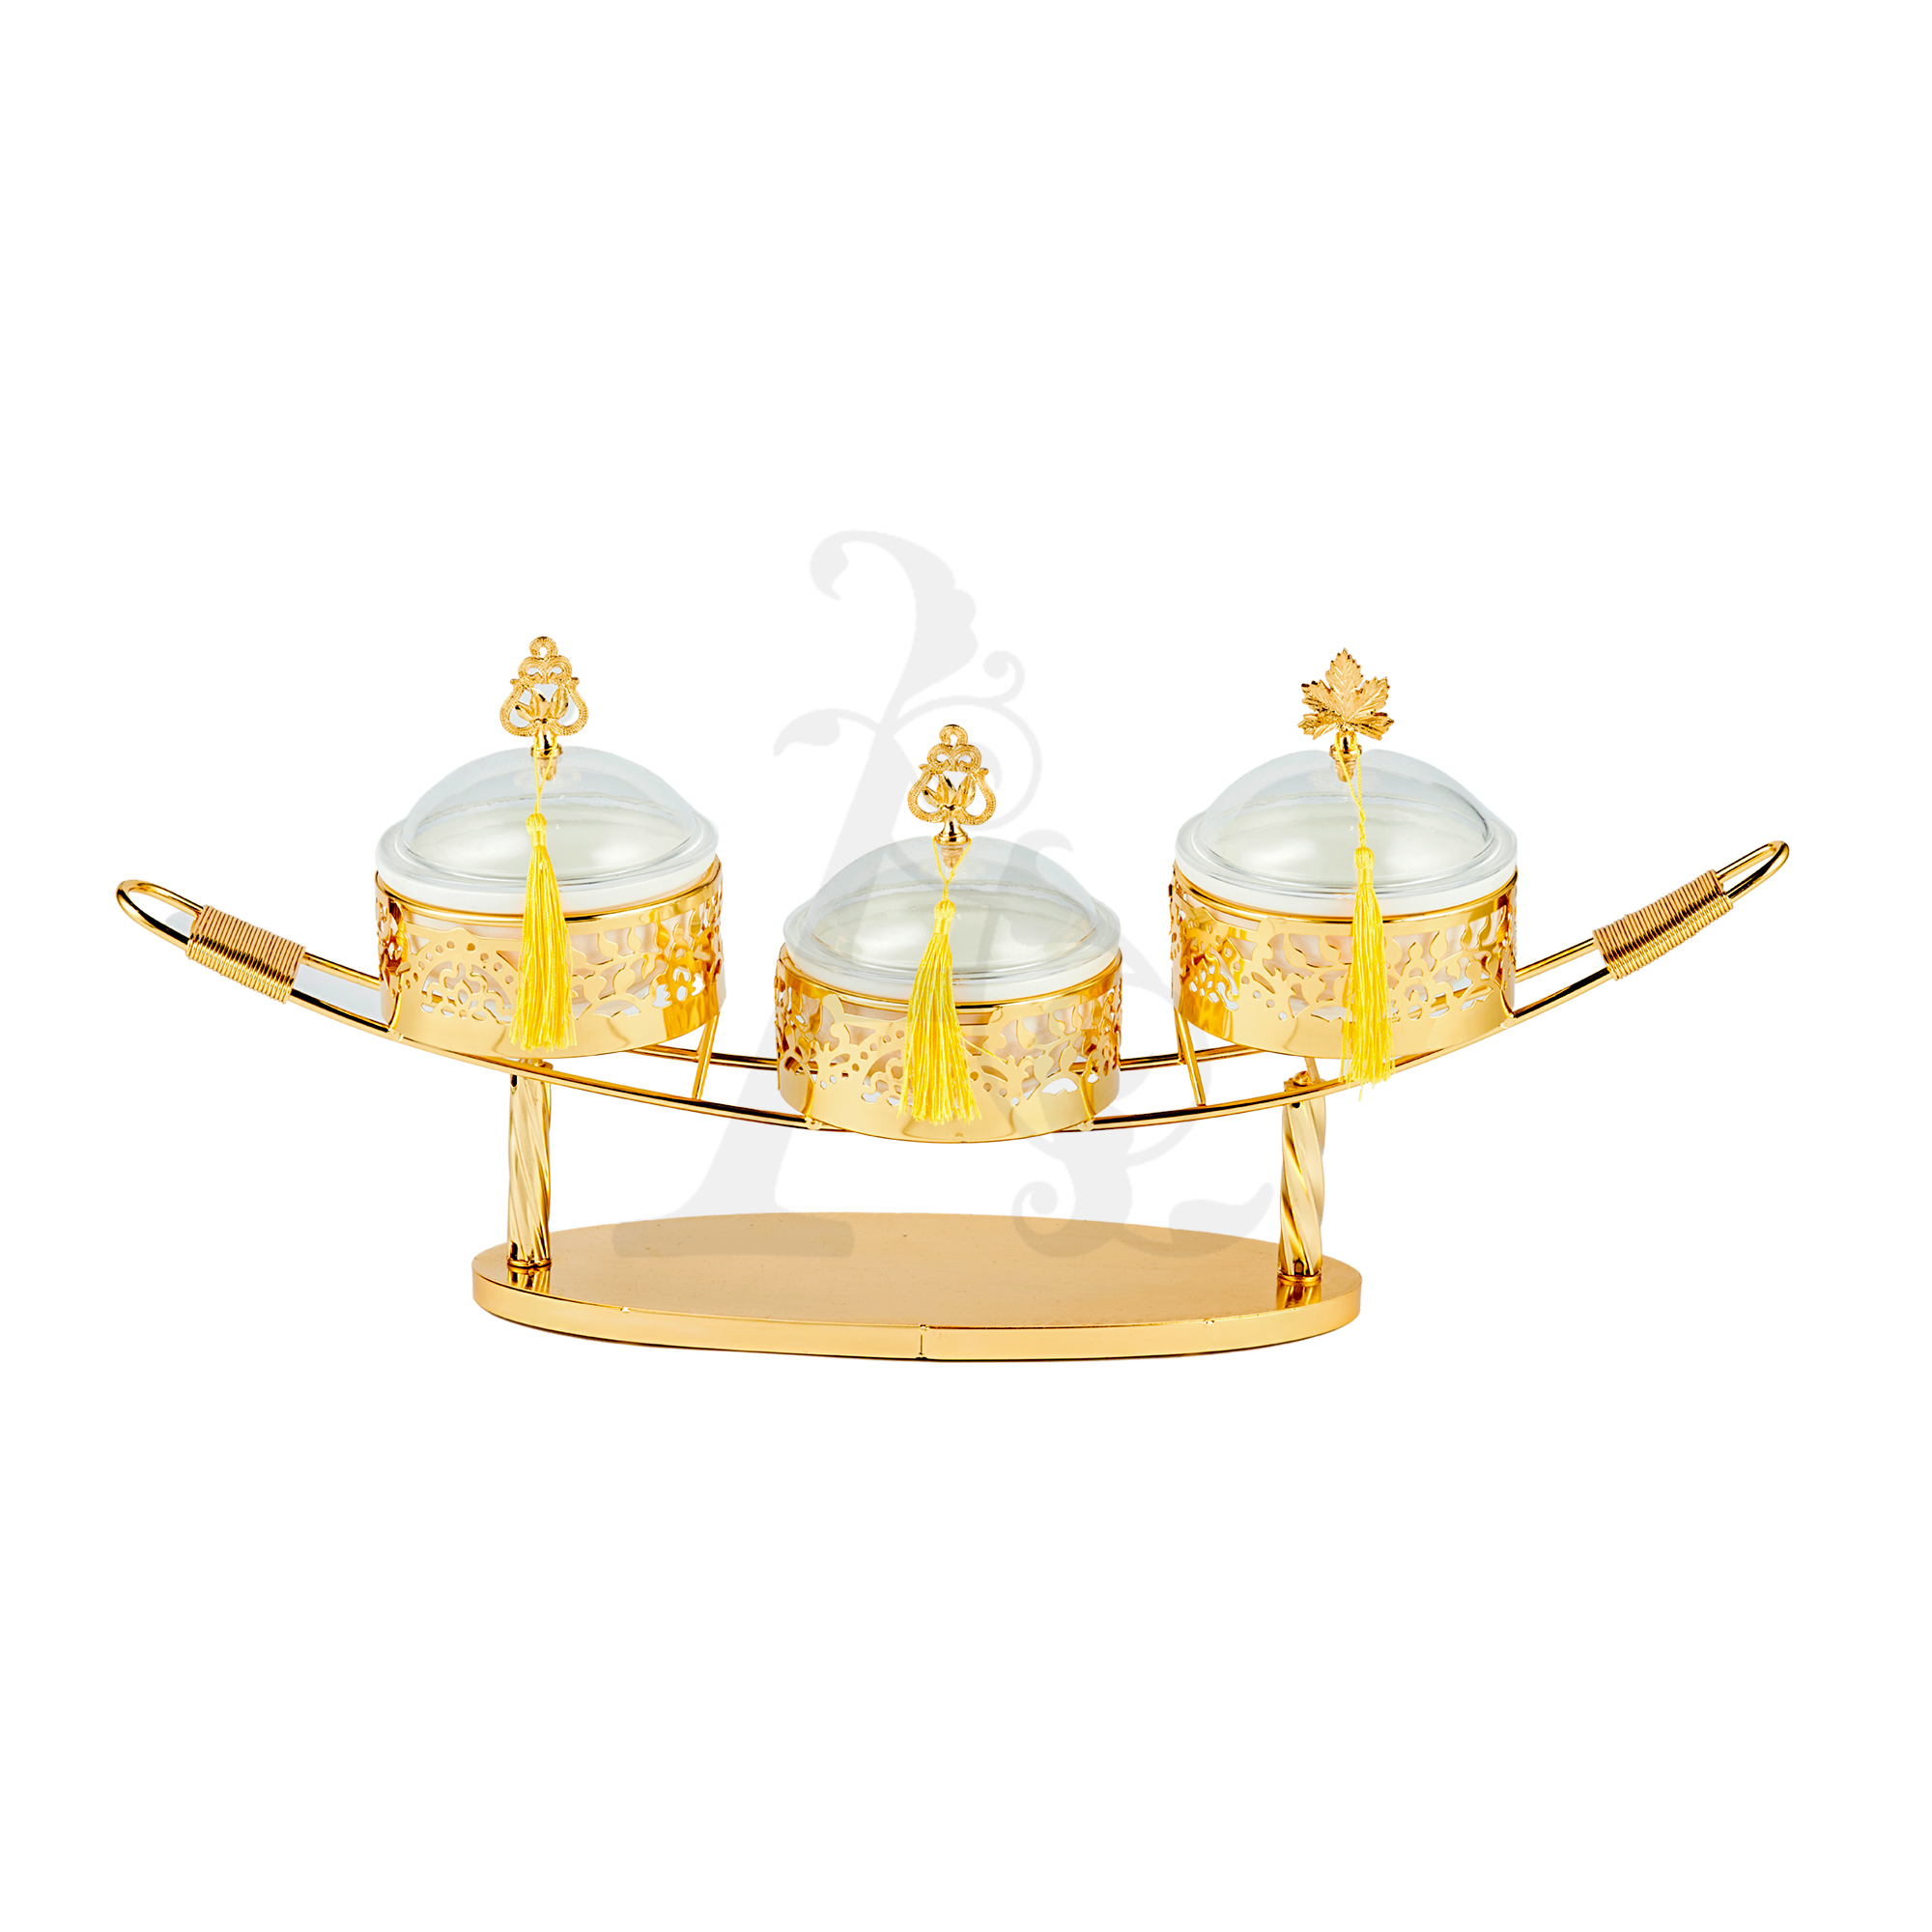 Buy Delight Servers Ship 3 Pieces Gold and White 60x13